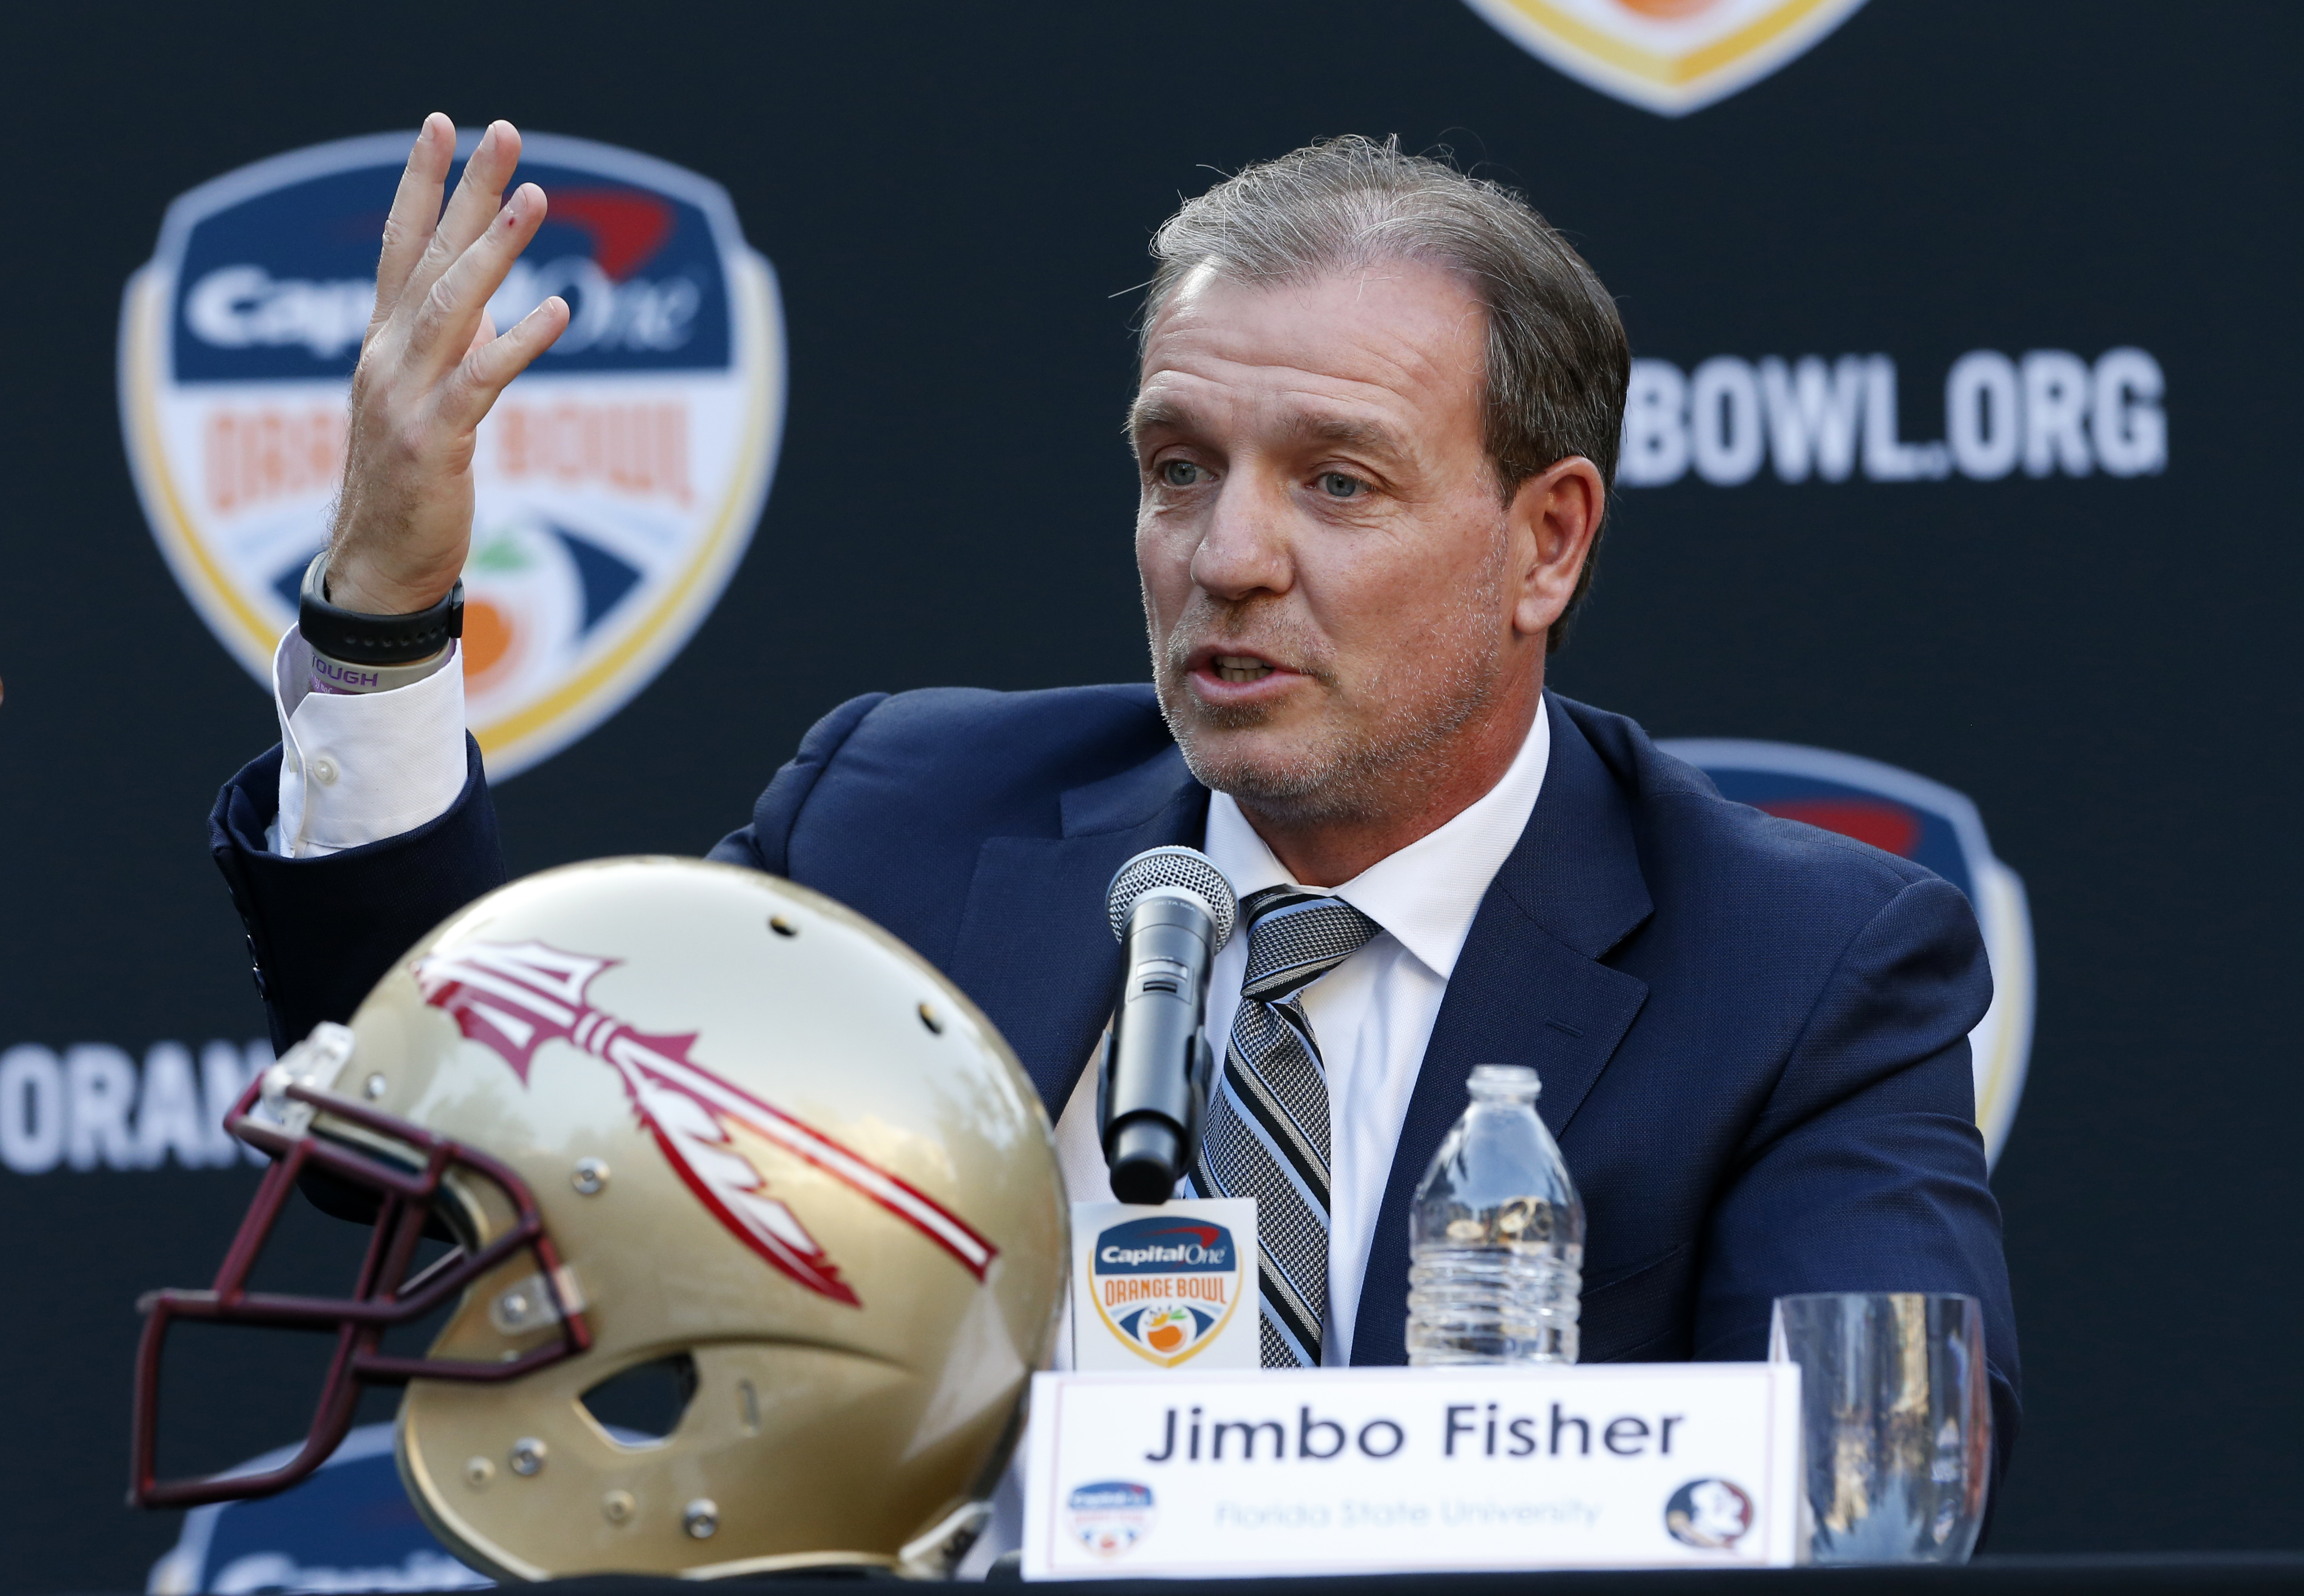 Florida State head coach Jimbo Fisher gestures as he speaks during a news conference, Wednesday, Dec. 7, 2016 in Hollywood, Fla. Michigan and Florida State will play each other Dec. 30, during the Orange Bowl in Miami Gardens, Fla. Fisher and Michigan coa